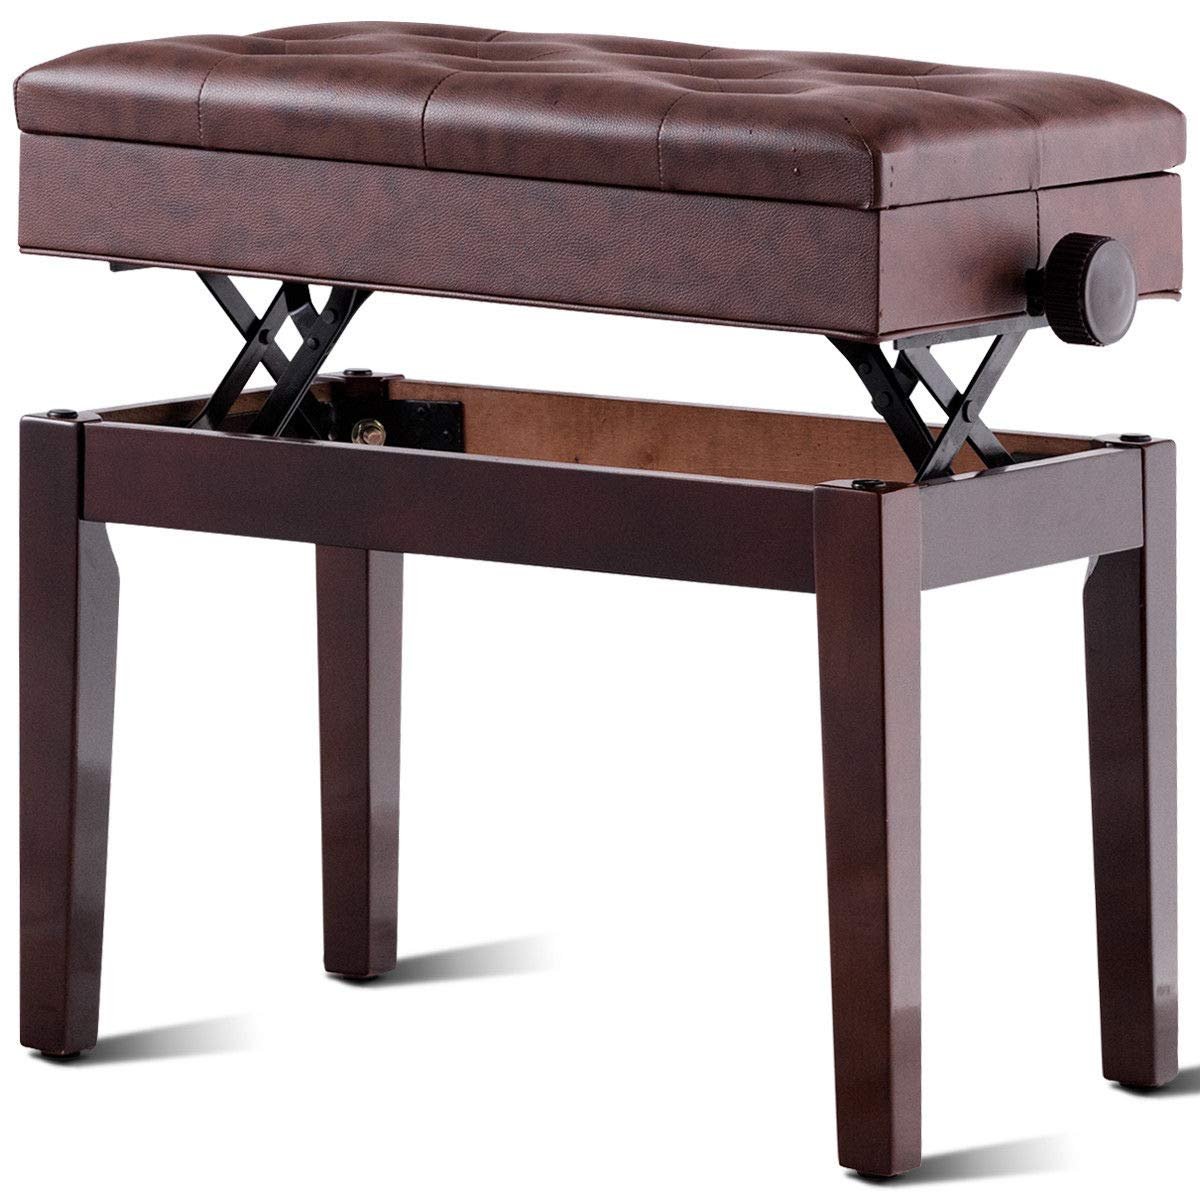 Giantex Adjustable Wooden Piano Bench with Music Storage and Padded  Cushion, PU Leather Comfortable Keyboard Stool with Anti-Slip Pad, Piano  Stool